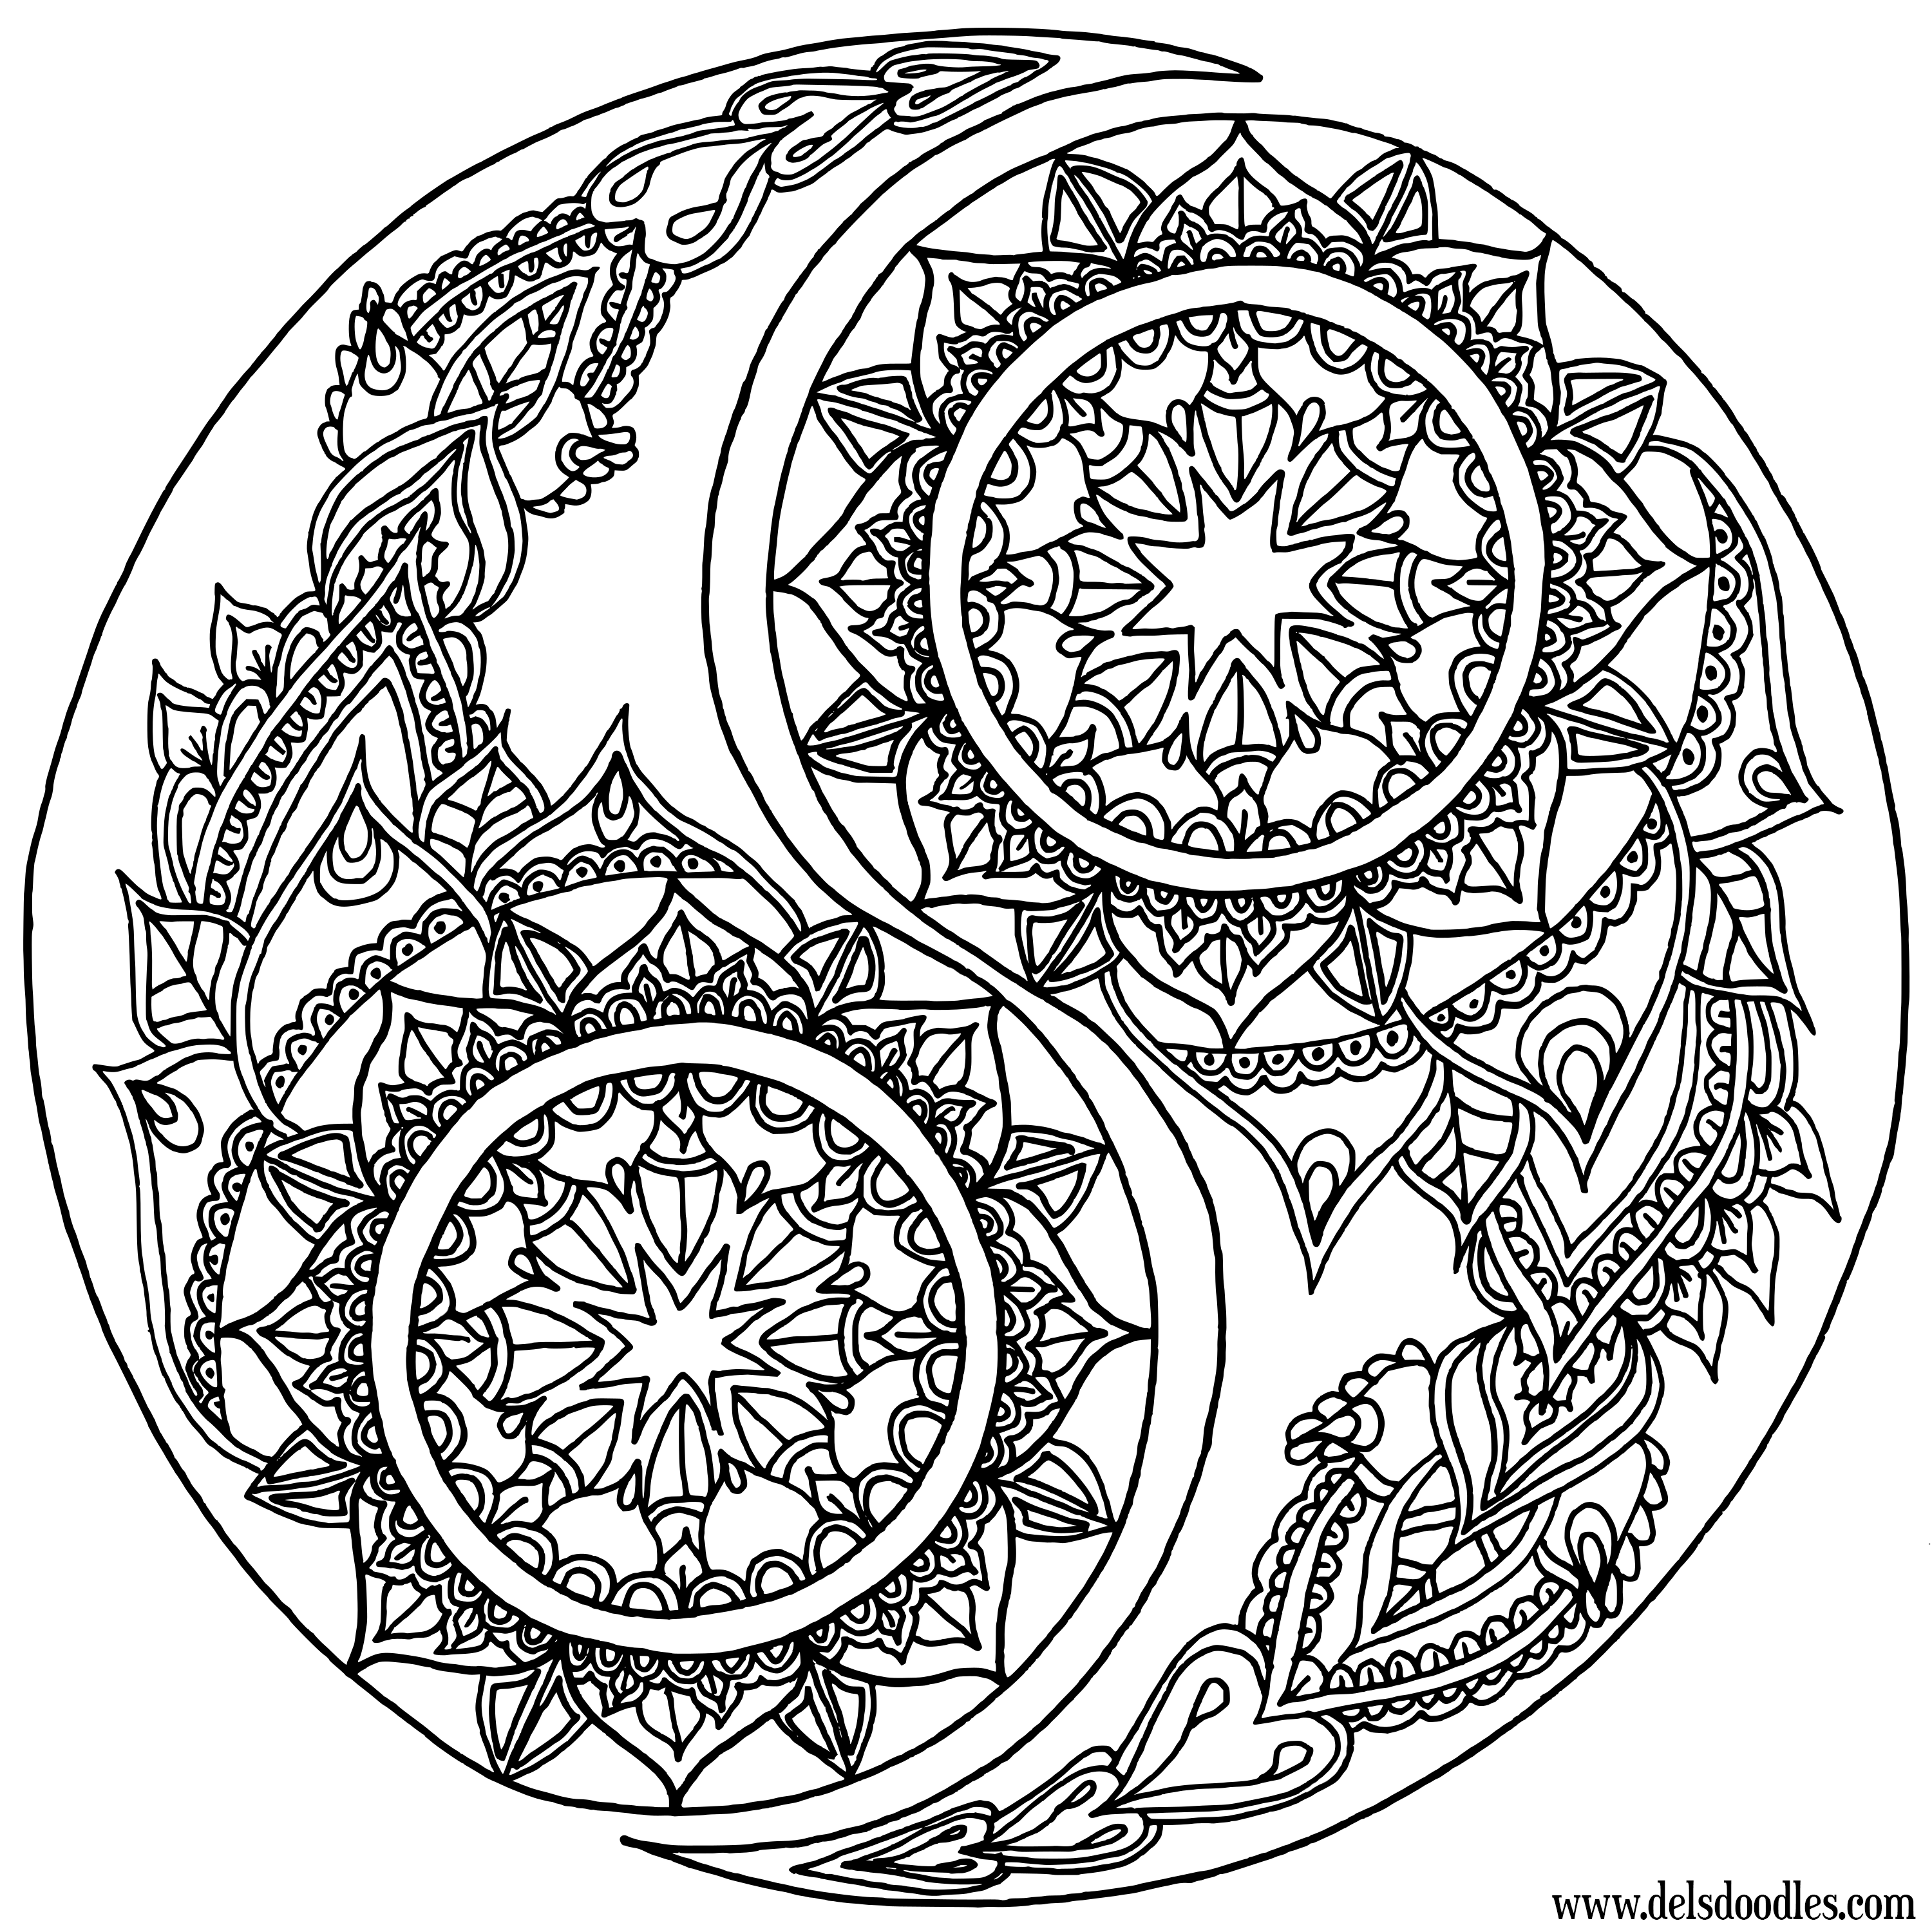 Coloring pages of careers - Alyshells 102 1 Yin Yang Coloring Page By Welshpixie